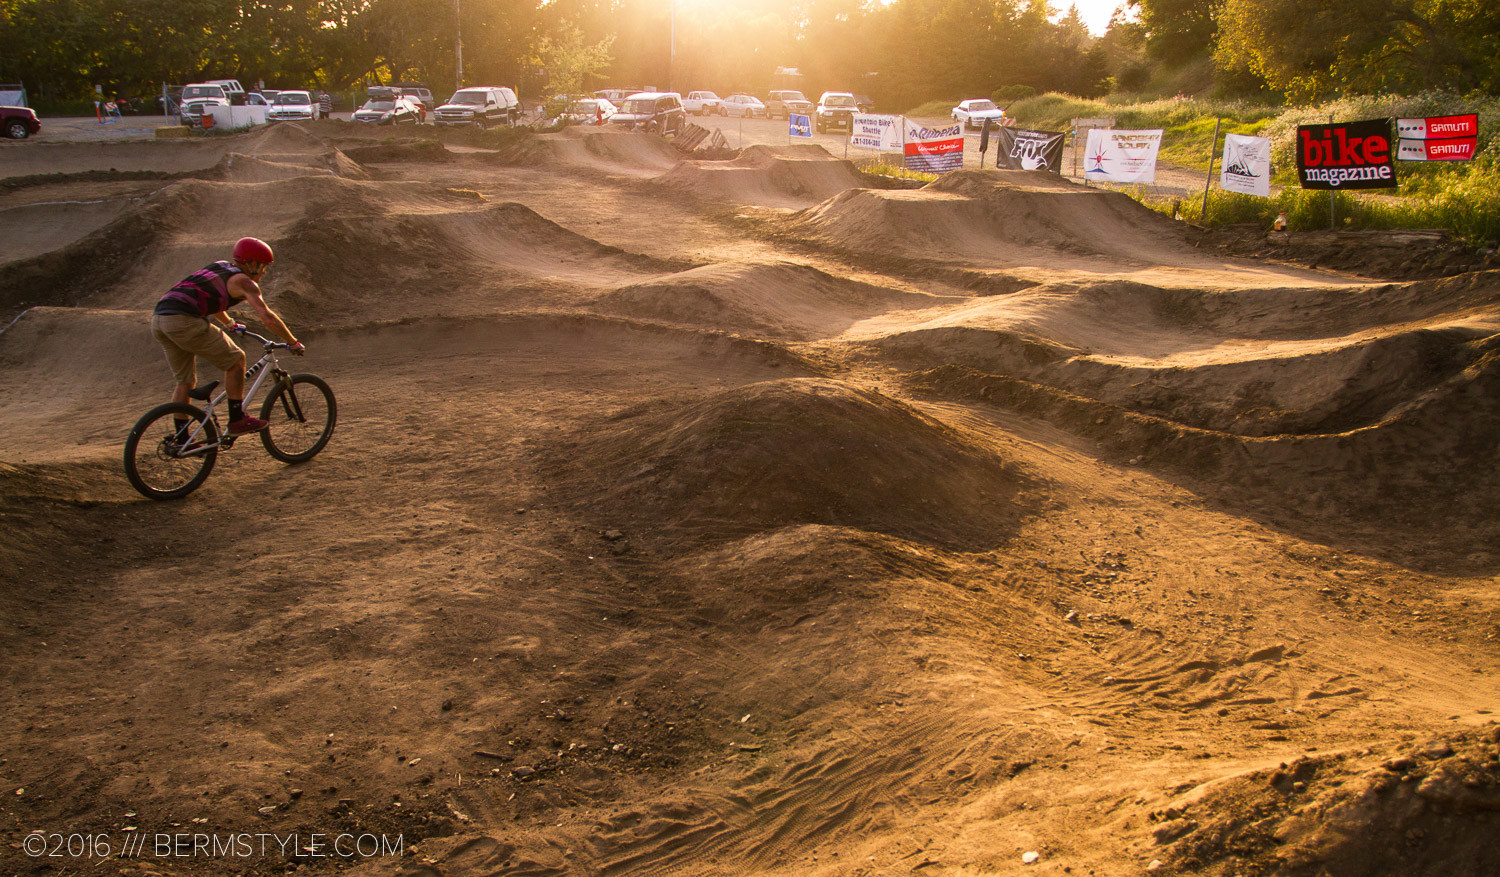 The Aptos Pump Track was retired in 2015 when the land was repurposed, but was renown as one of the best pump tracks in the area.